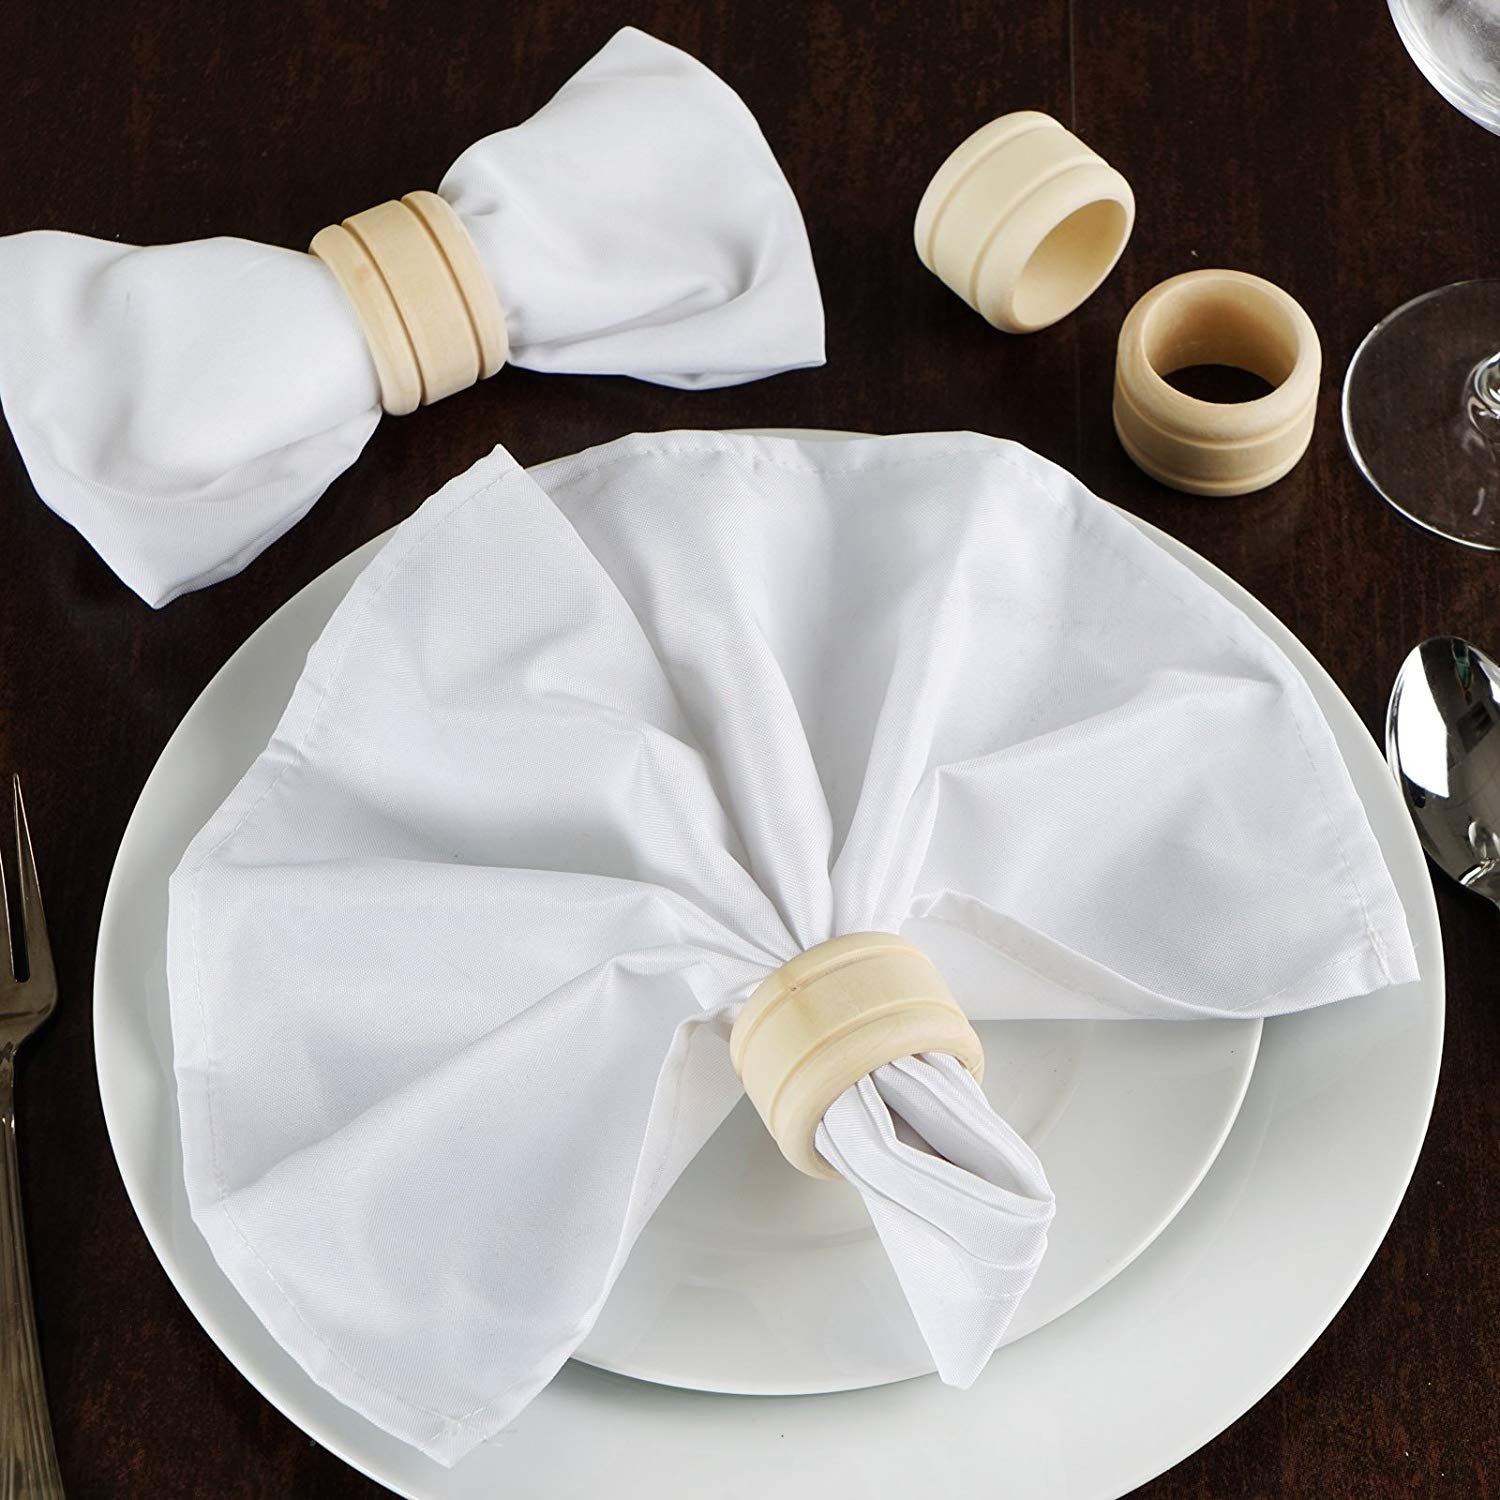 Tableclothsfactory 20 Pcs Sleek Natural Wooden Napkin Rings for Decoration